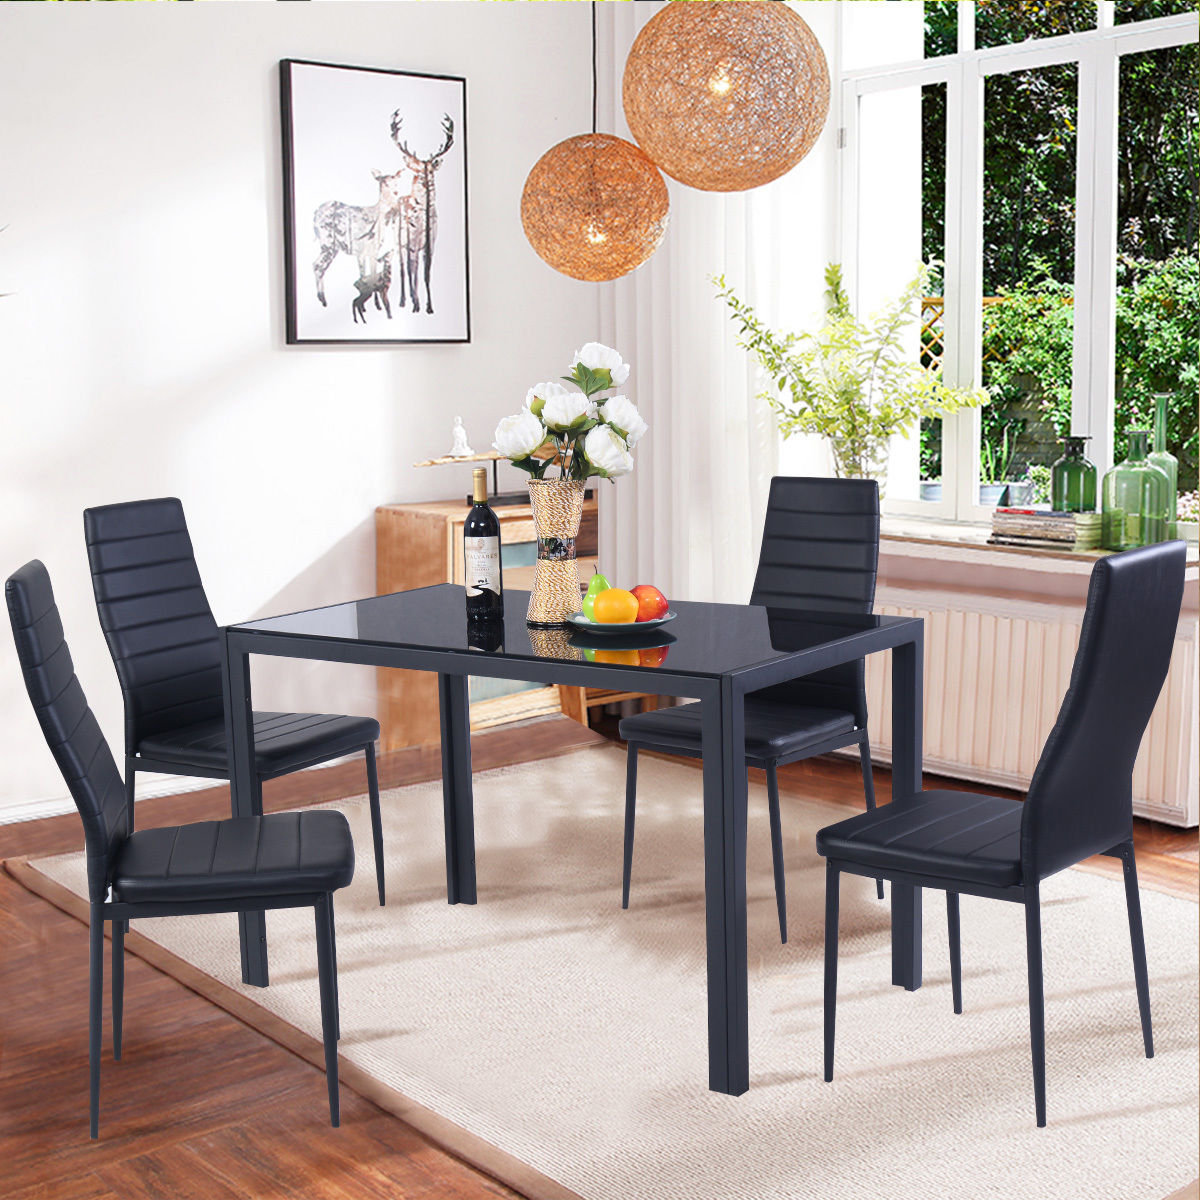 Costway 5 piece kitchen dining set glass metal table and 4 chairs breakfast furniture walmart com